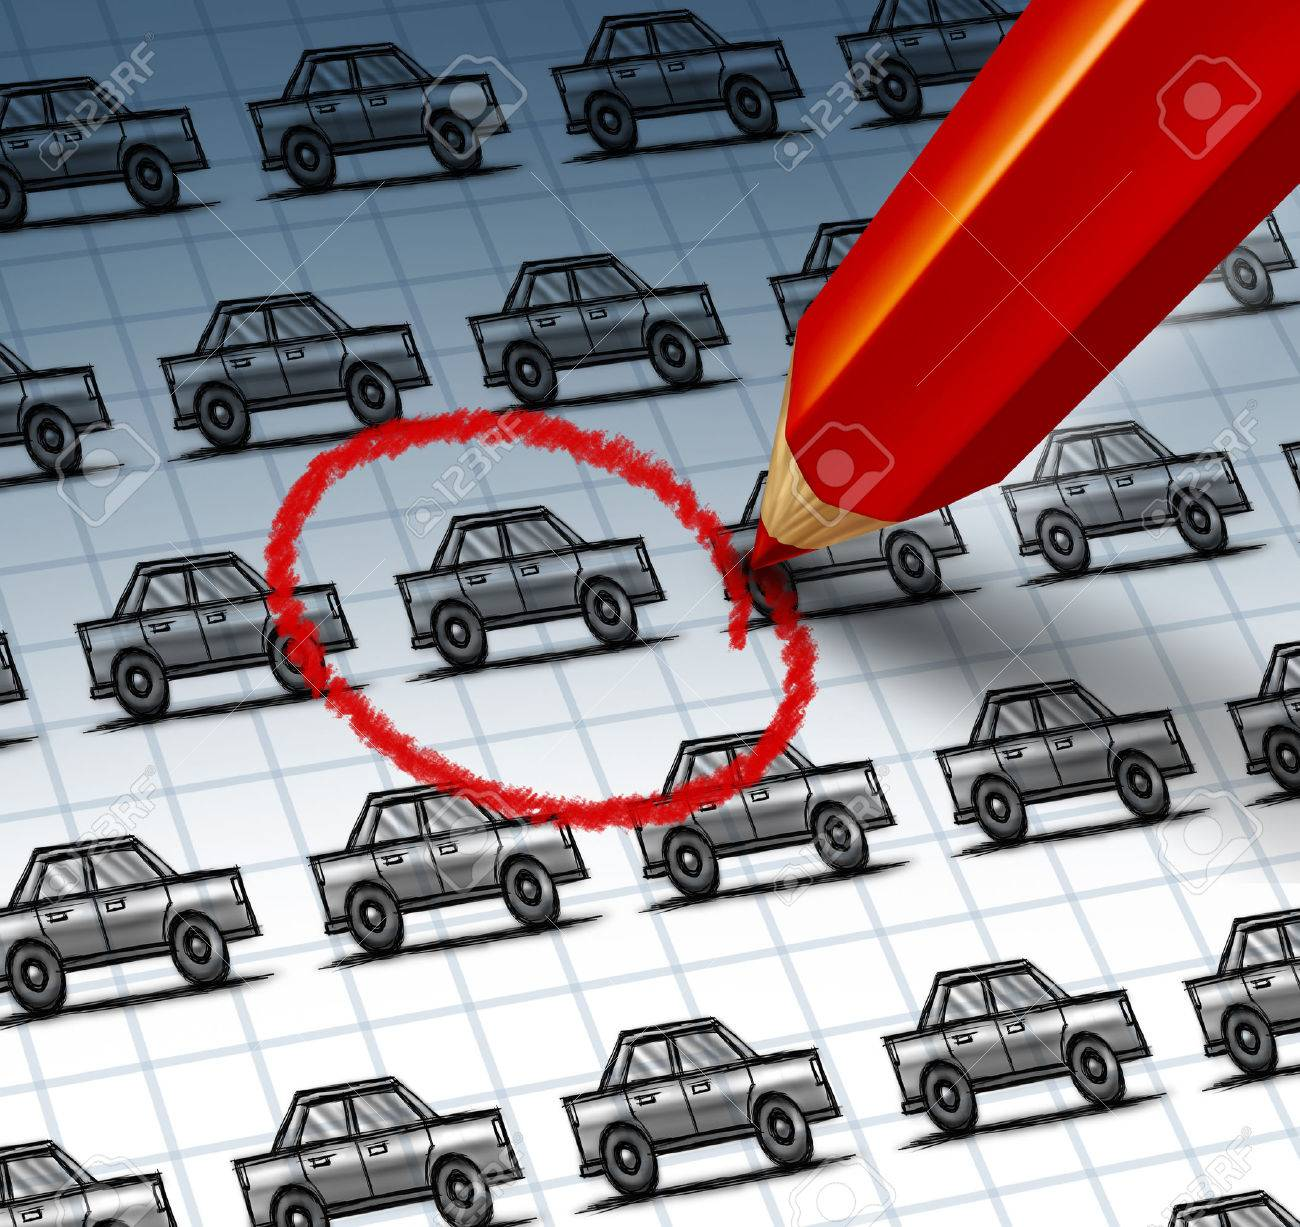 Car shopping concept and auto insurance search symbol with a red pencil crayon highlighting a drawing from a group of cars as an icon of finding the perfect vehicle at a used or new dealership with internet searching Stock Photo - 22986358